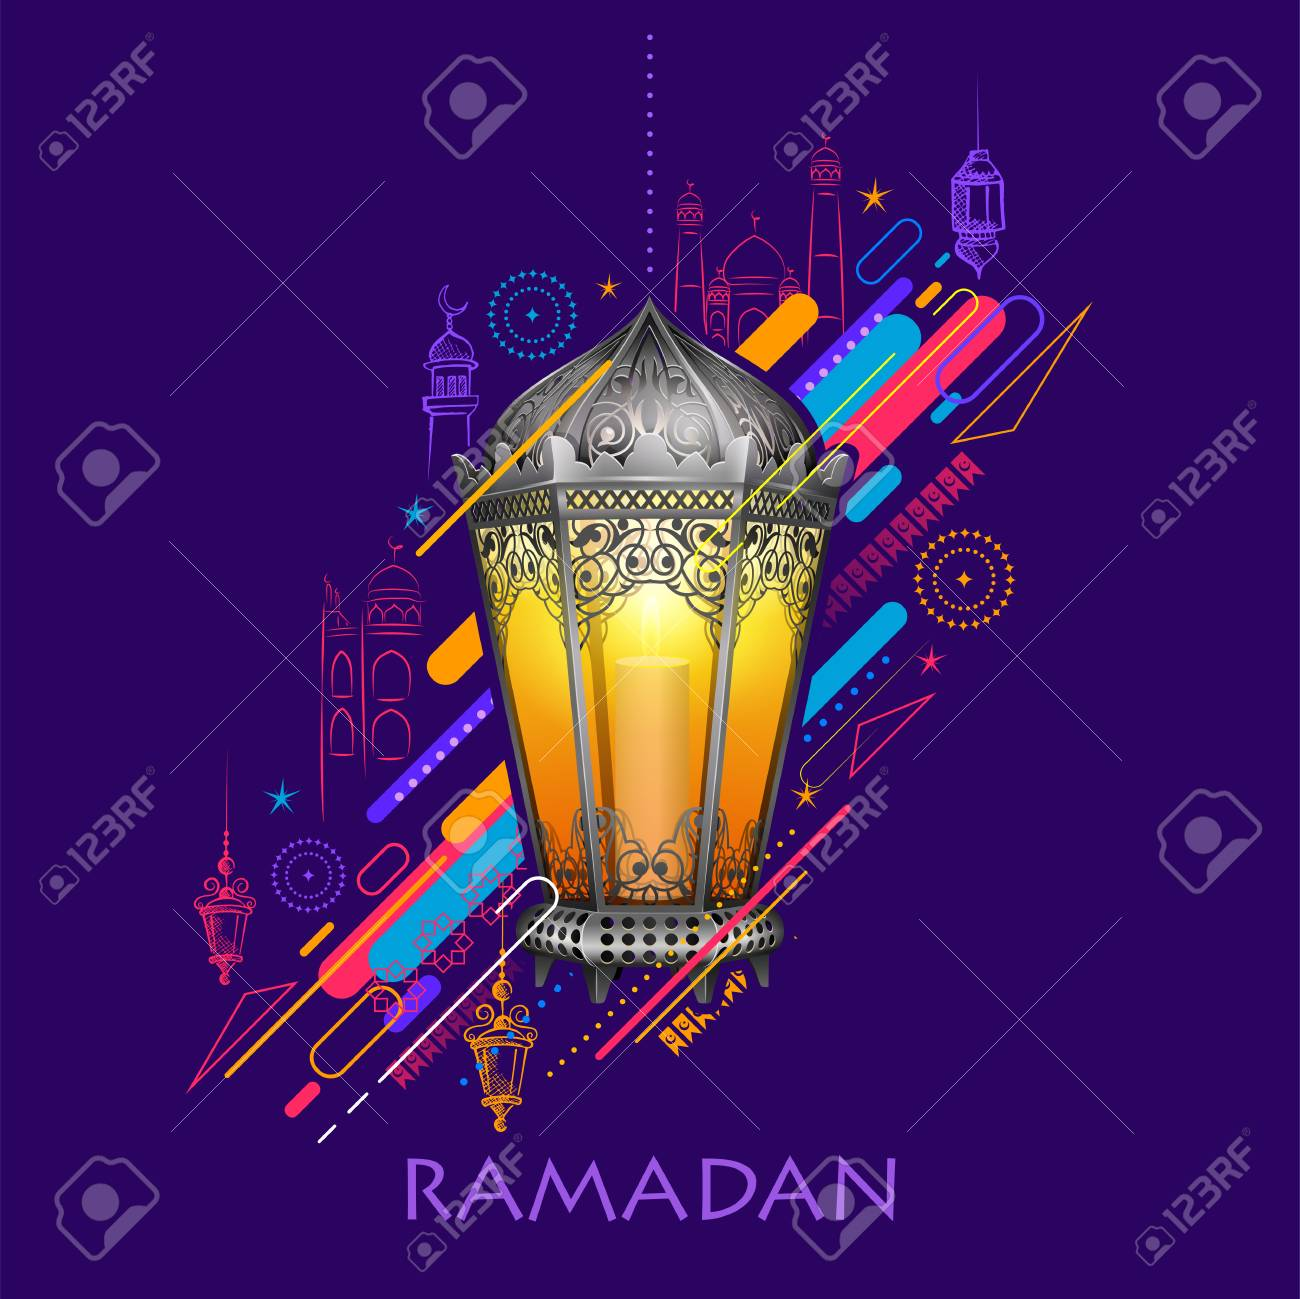 ramadan kareem generous ramadan greetings for islam religious